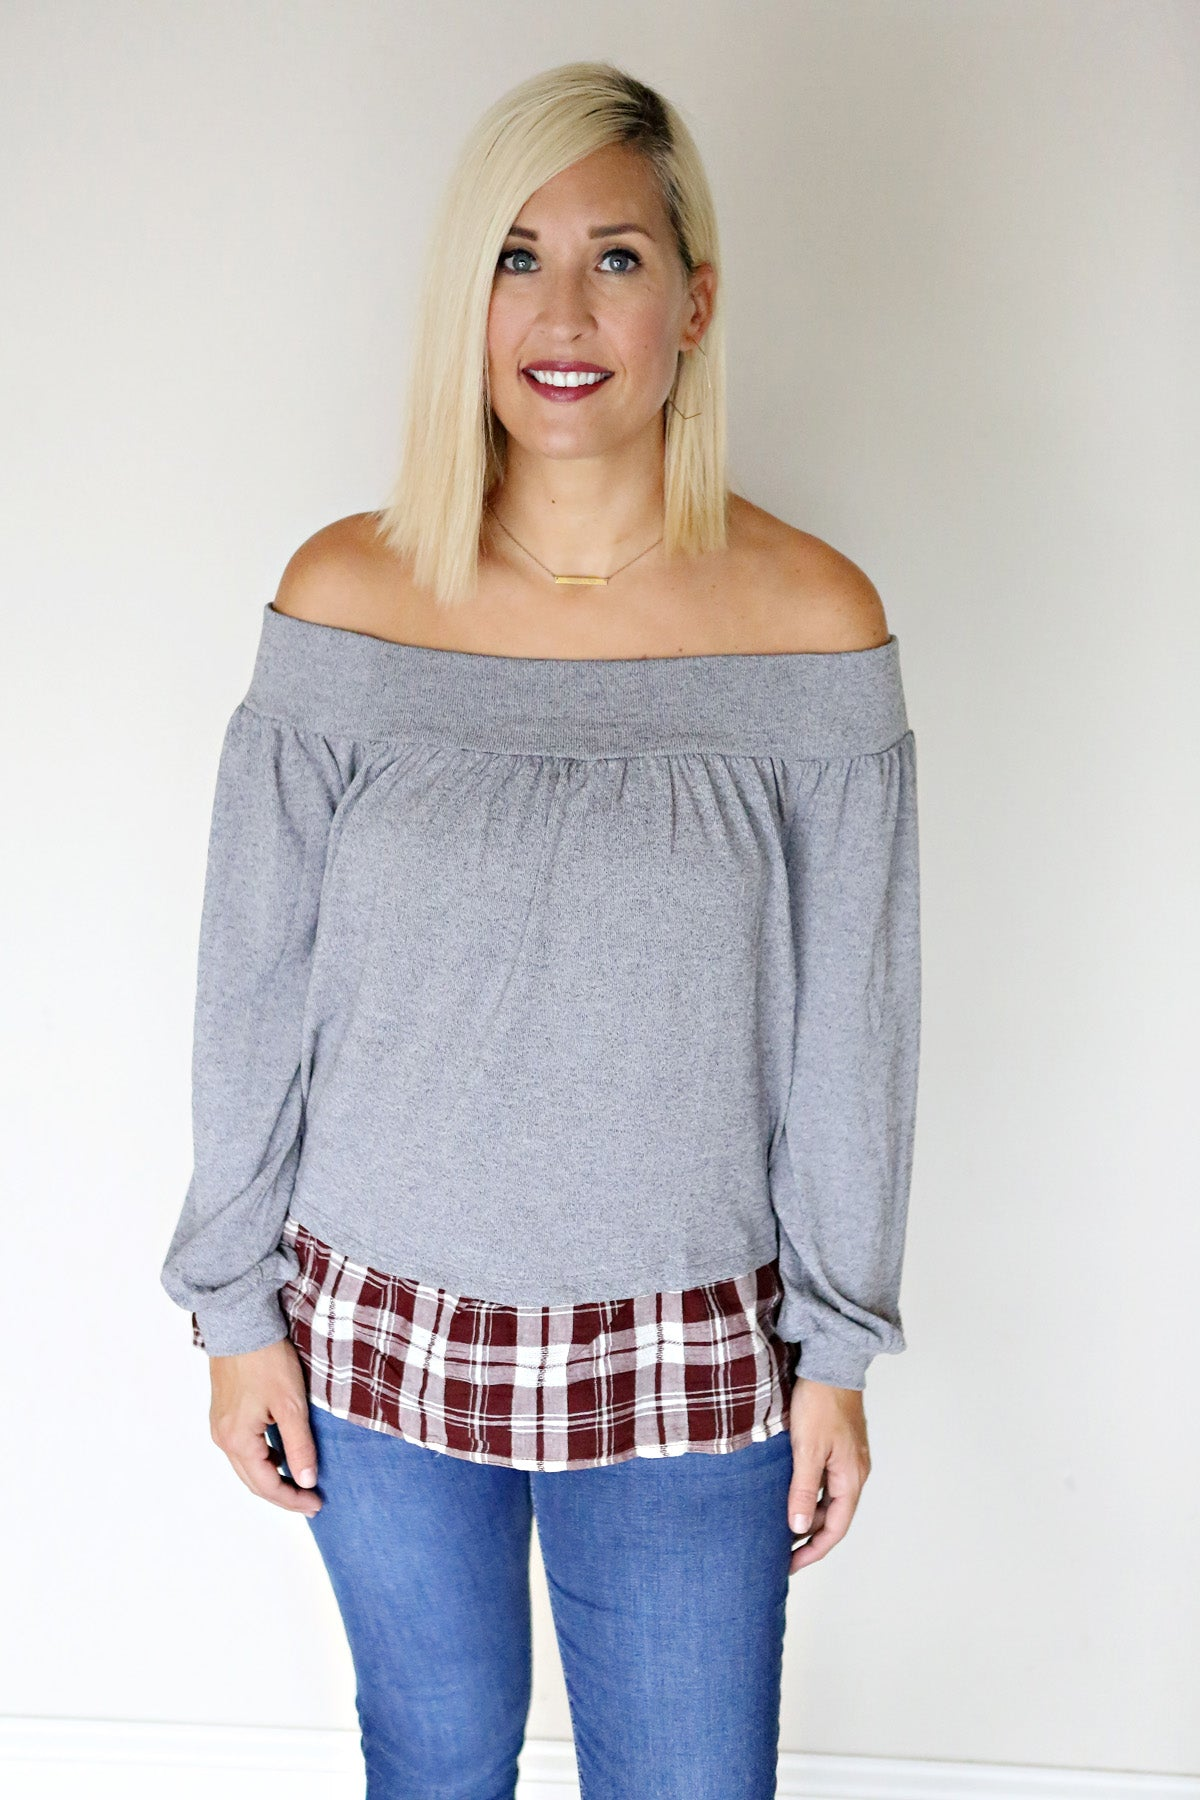 Bodhi Top - FINAL SALE - Gray Monroe